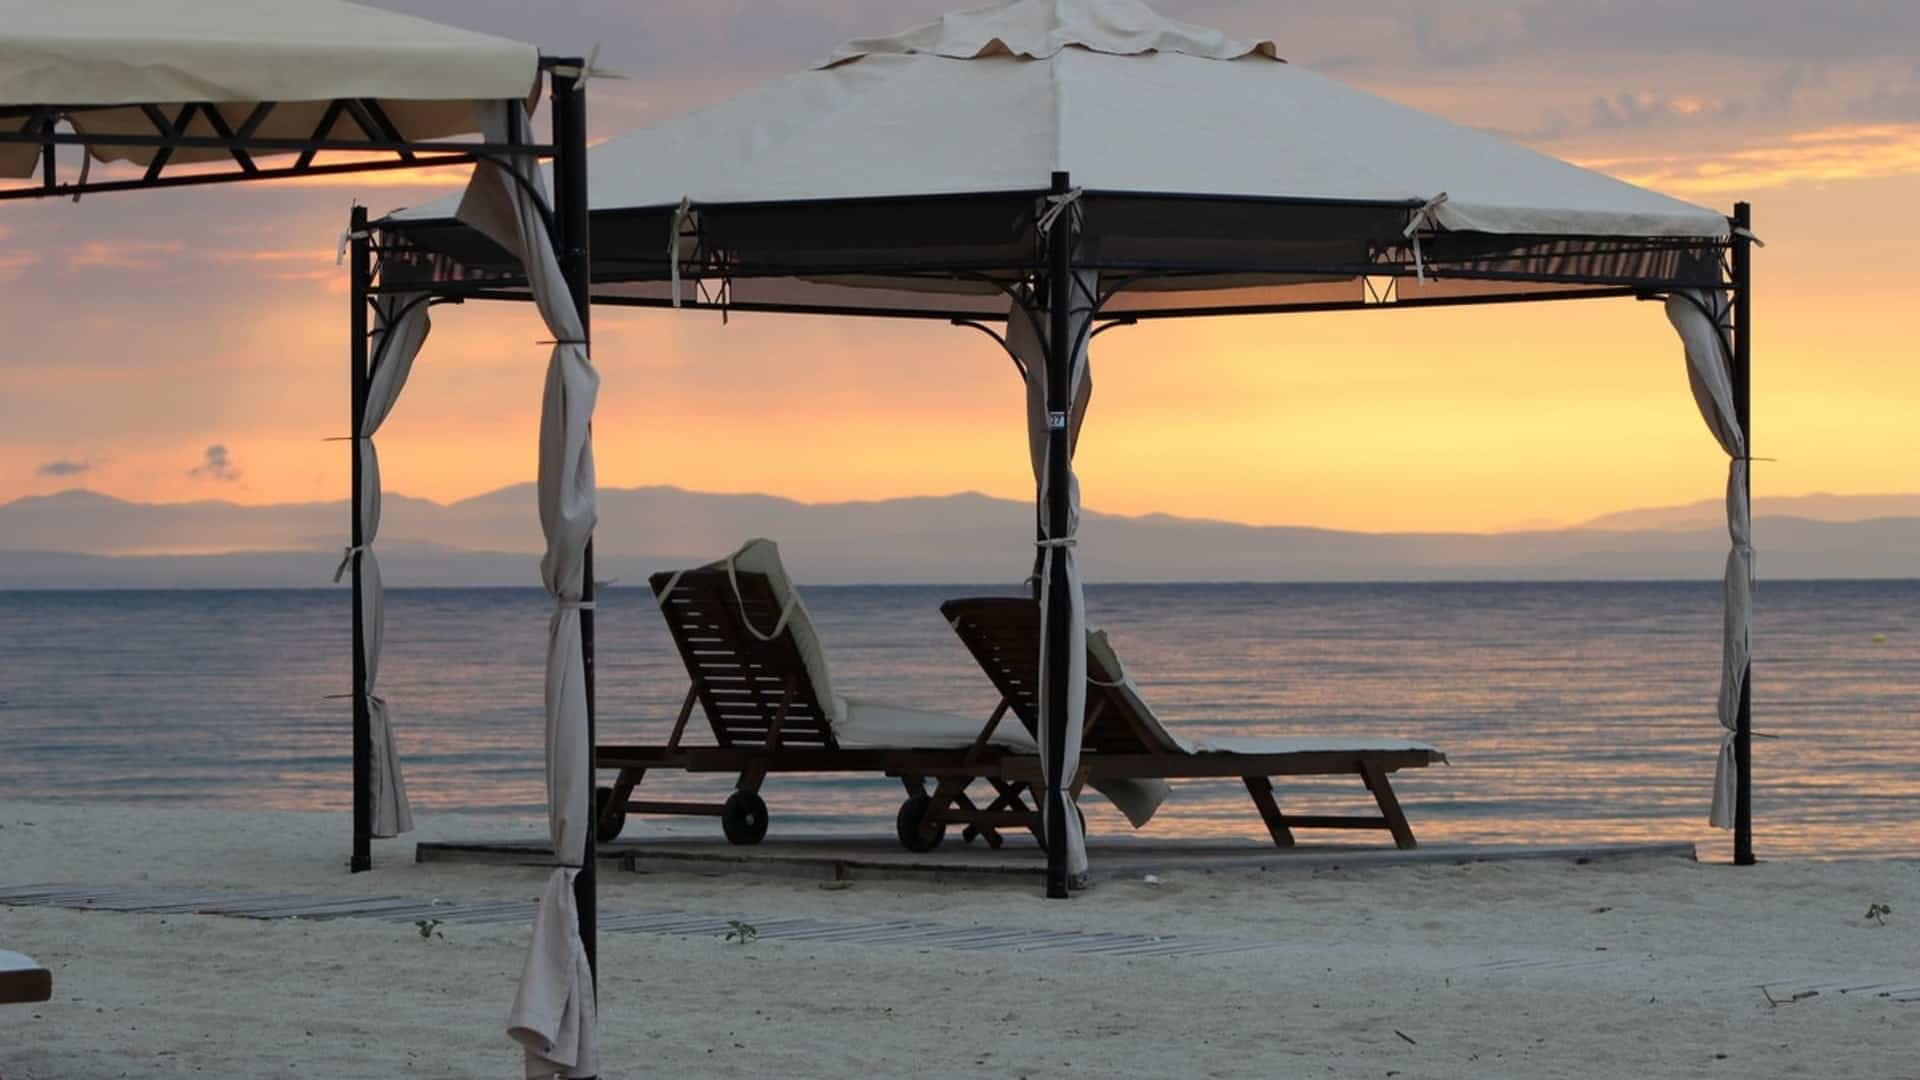 The Best Pop Up Canopy For Beach Use Of 2020